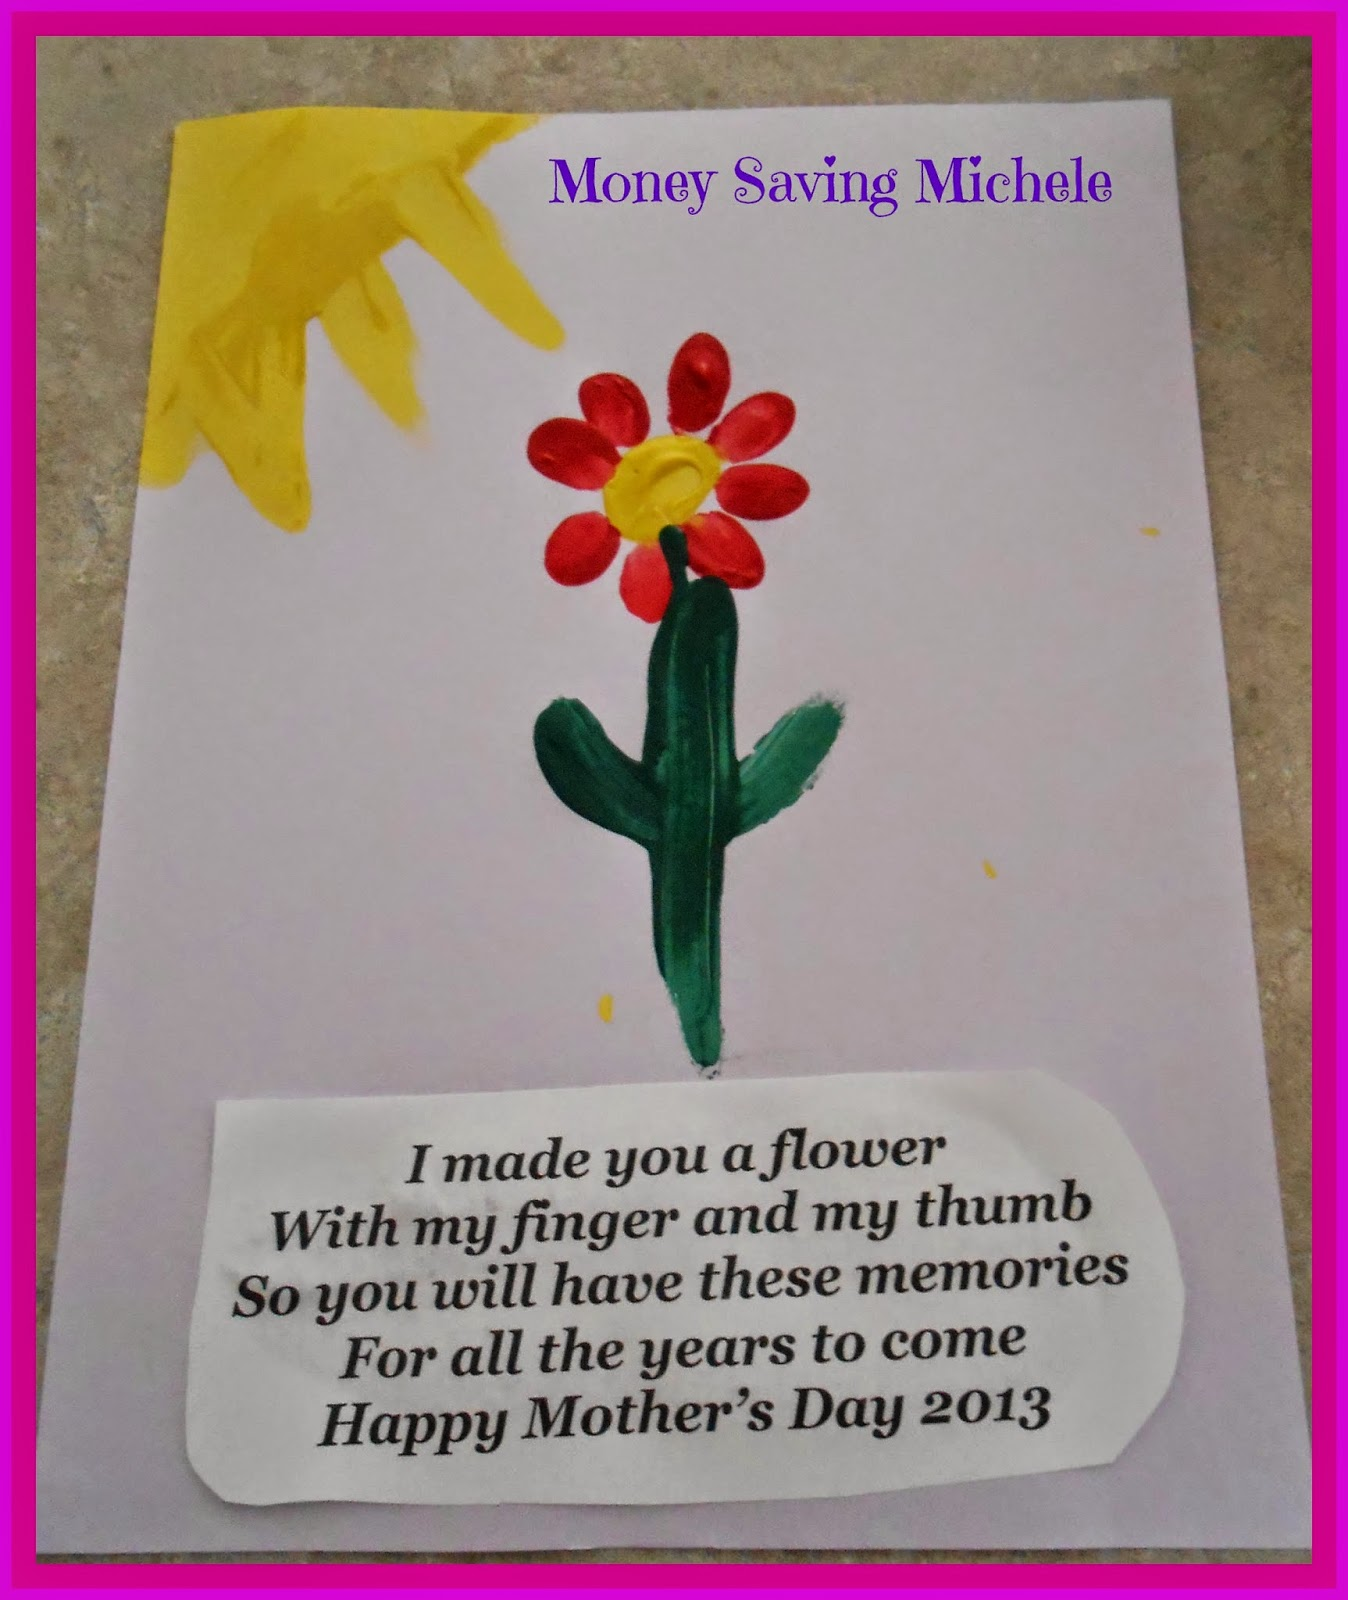 http://moneysavingmichele.com/2013/05/mothers-day-craft-for-kids-fingerprint-flower/.html